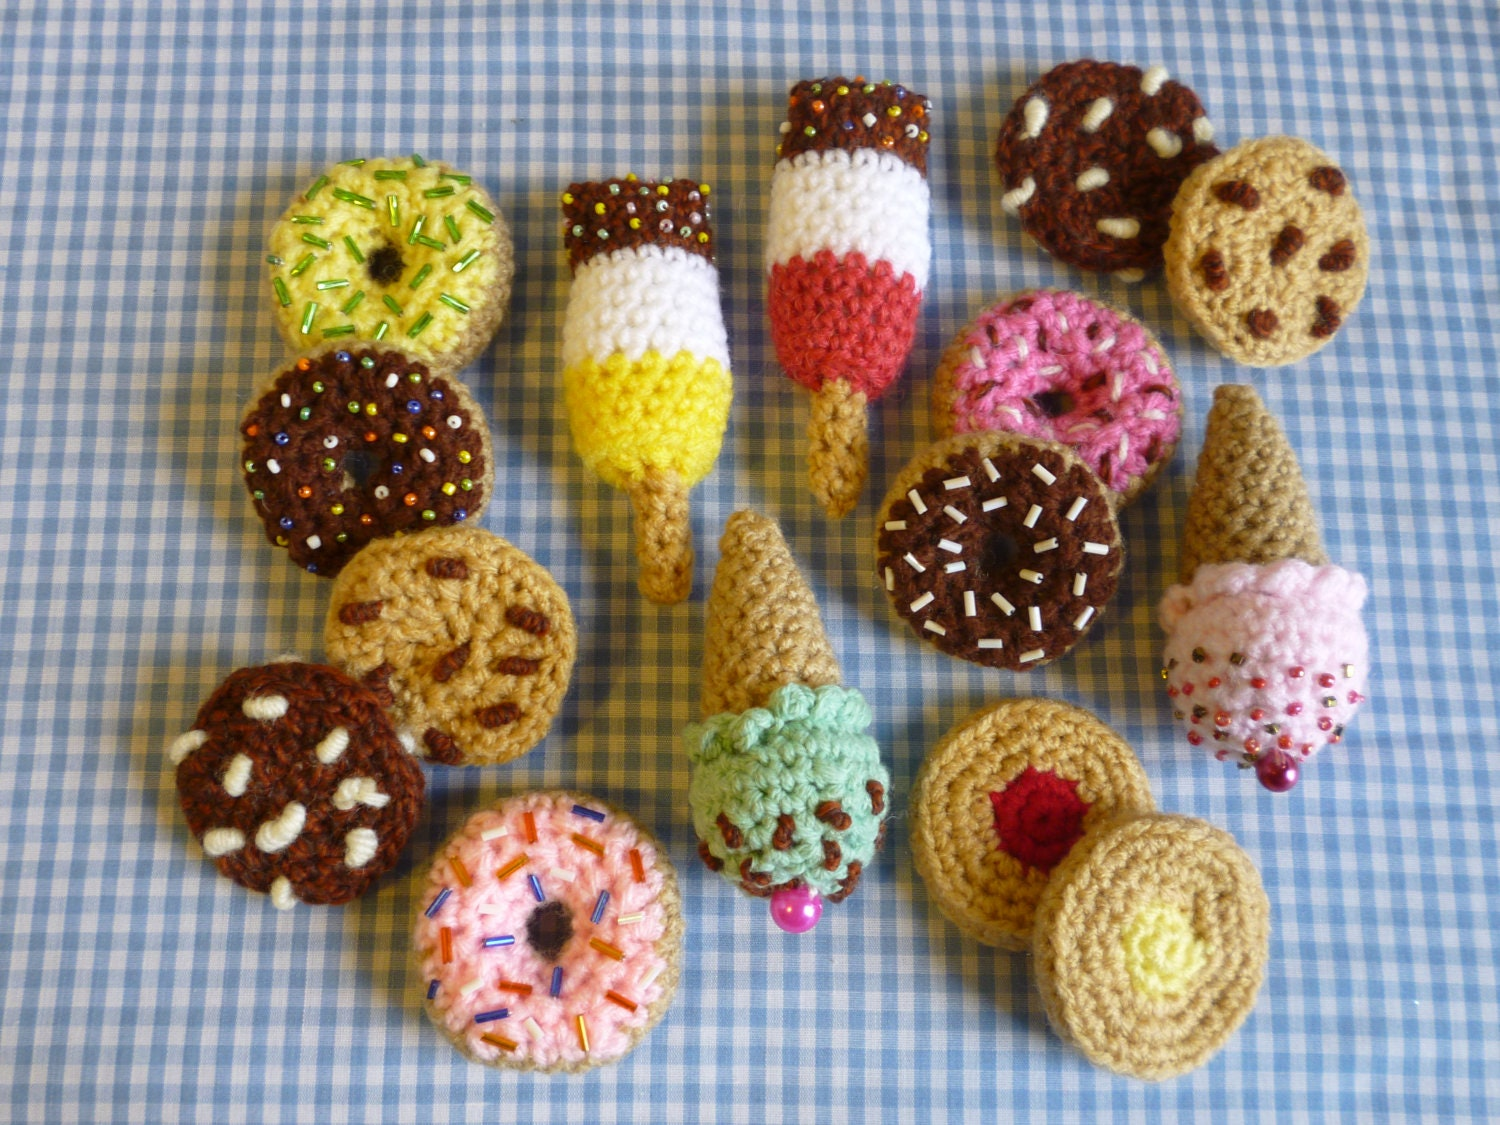 Free Online Crochet Patterns For Amigurumi : Party Treat Food Amigurumi Crochet Pattern by mojimojidesign